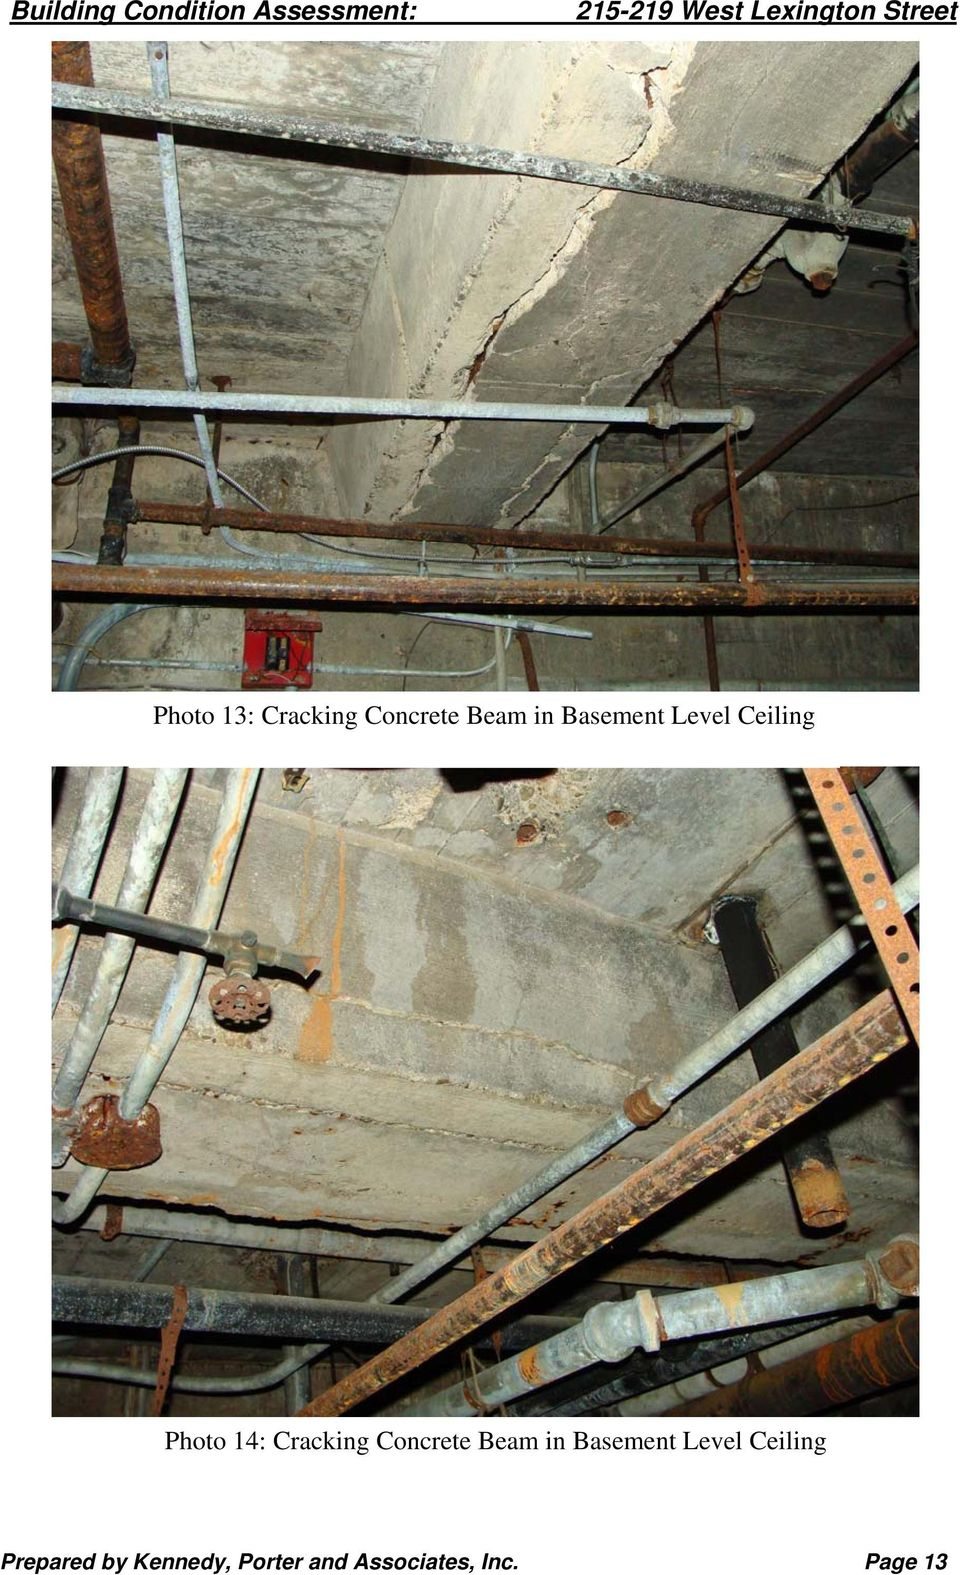 Concrete Beam in Basement Level Ceiling